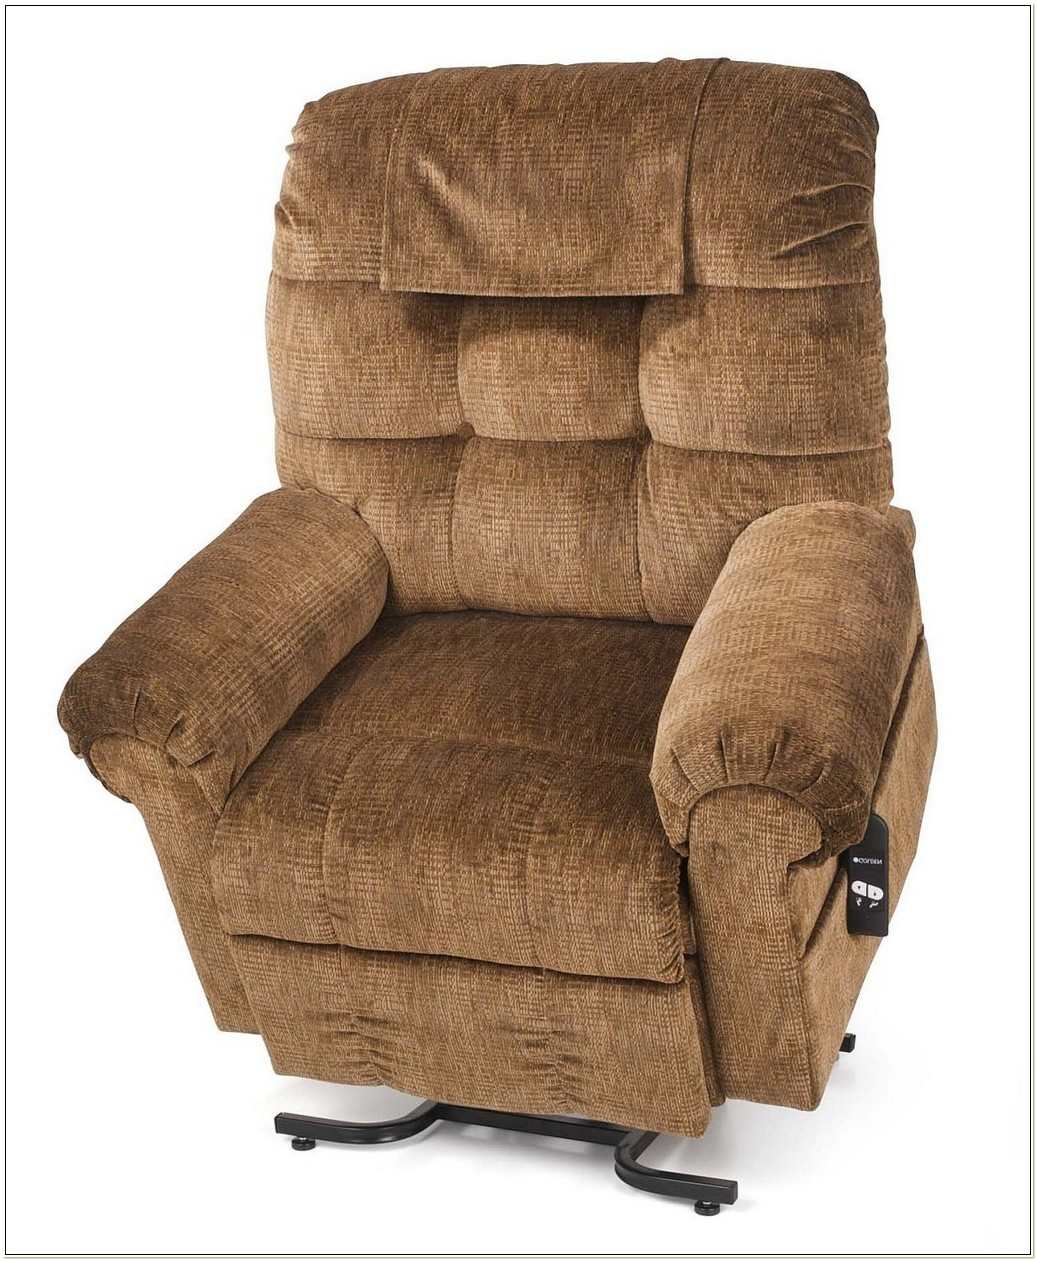 Lazy Boy Recliner Lift Chair - Chairs : Home Decorating ...